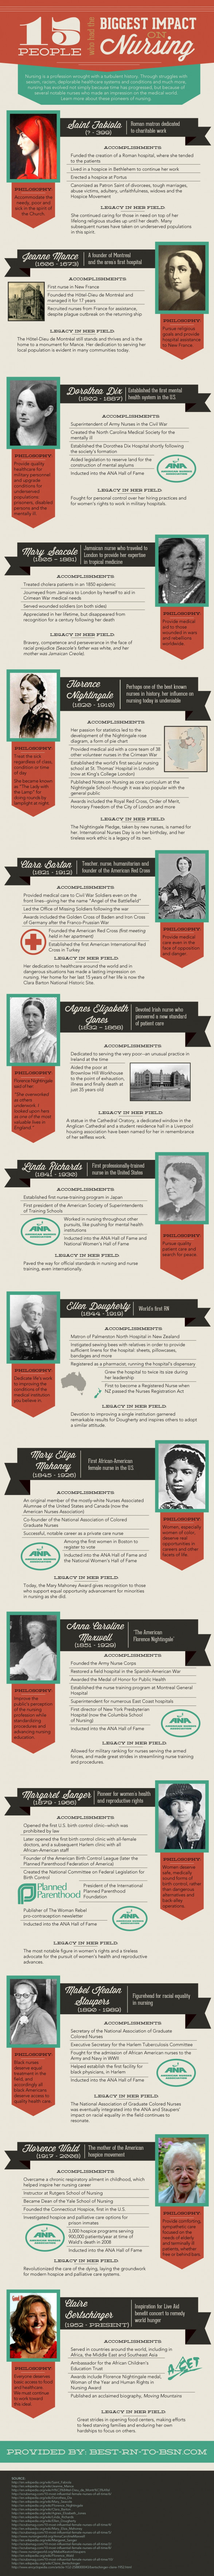 INFOGRAPHIC: Fifteen people who had the biggest impact on nursing